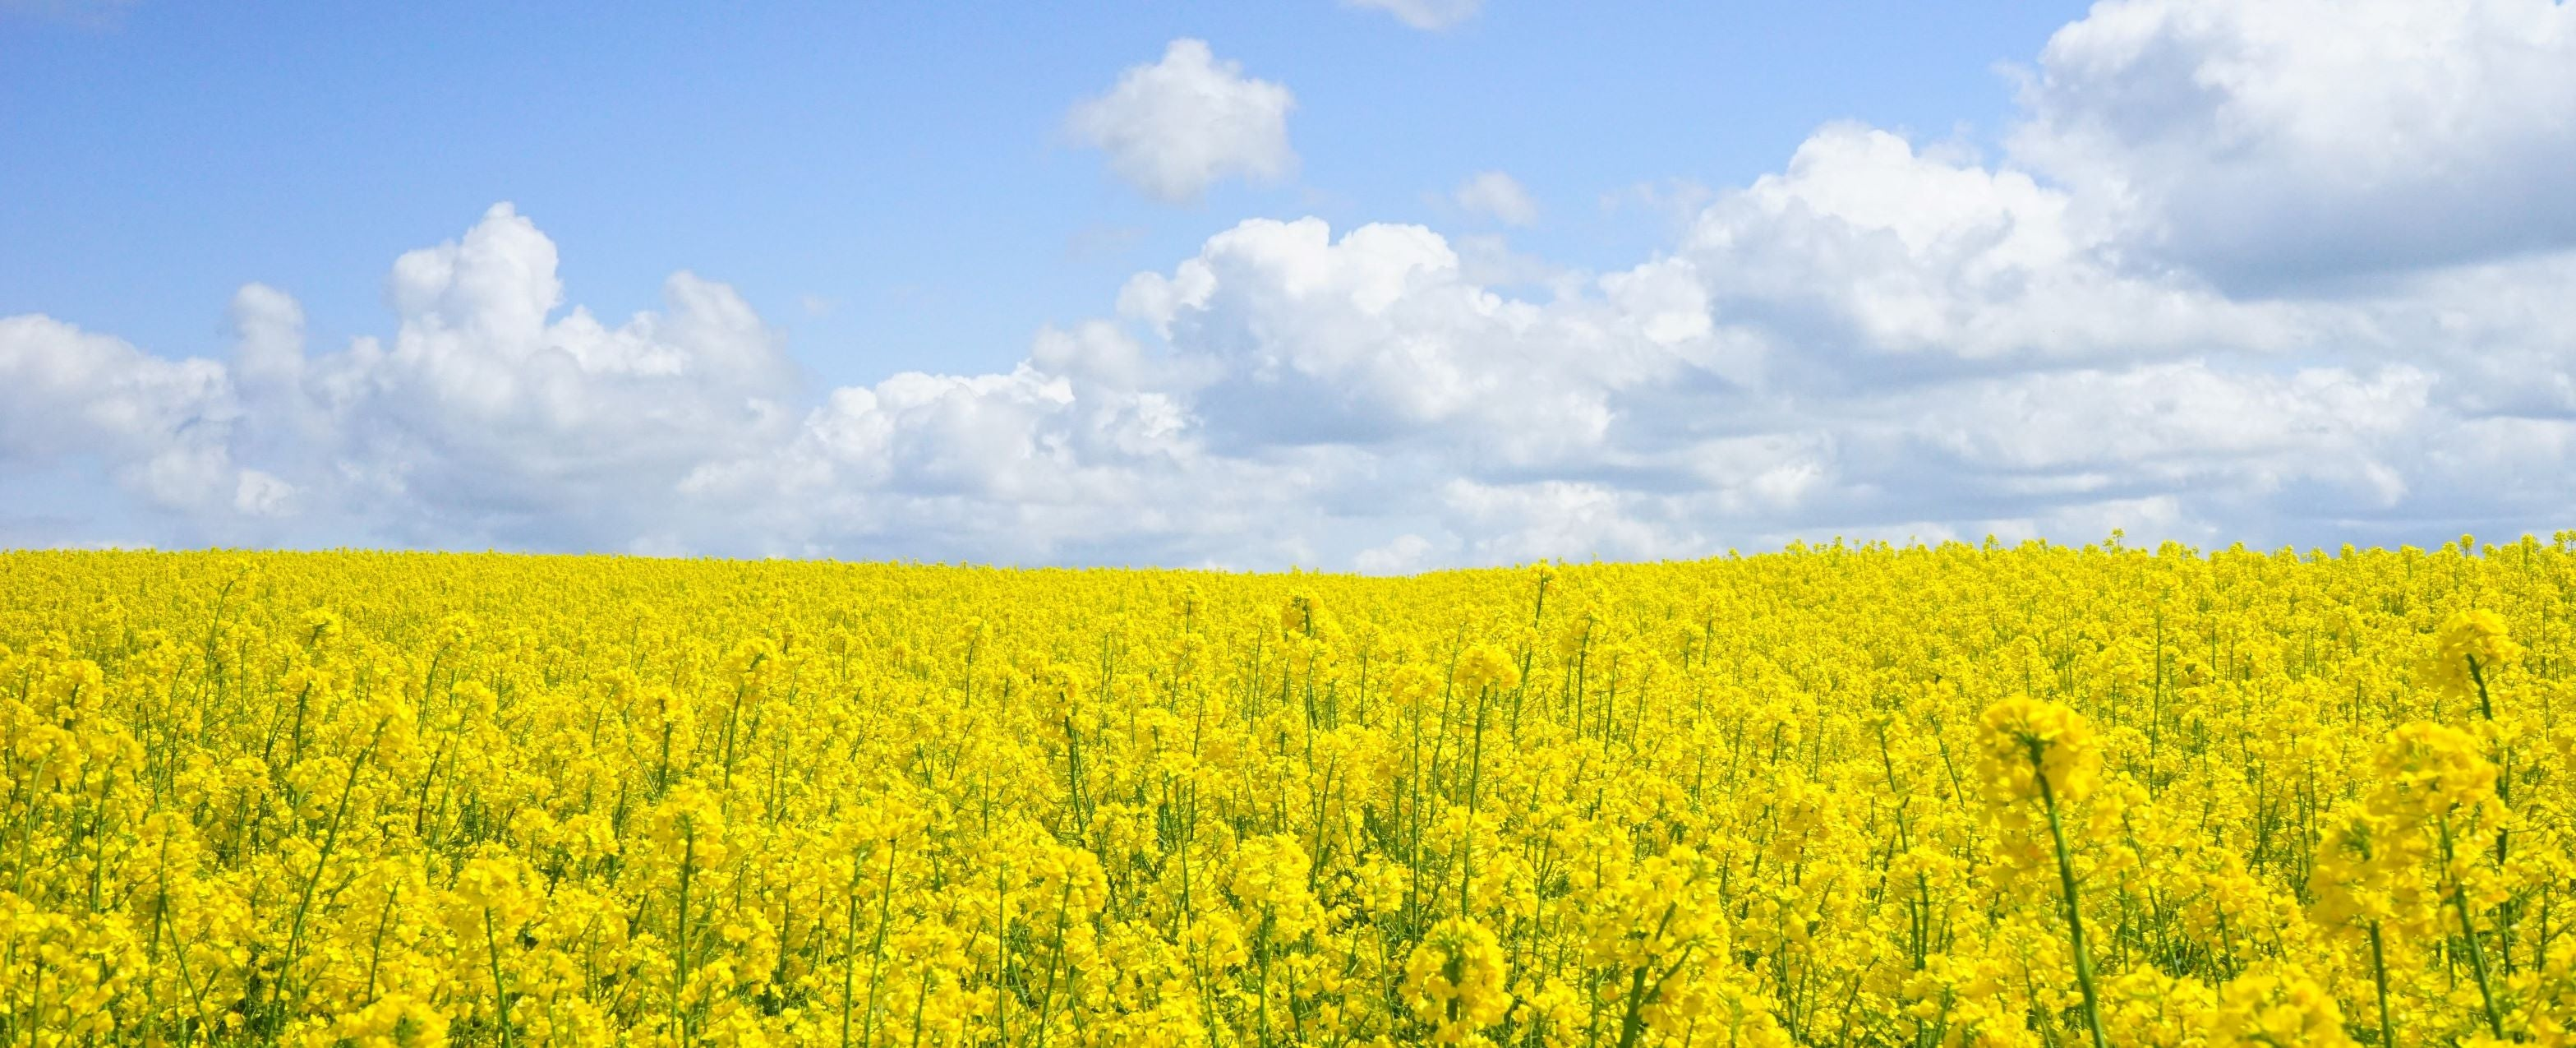 agriculture-bloom-blossom-sky-clean-green-sustainable-fashion